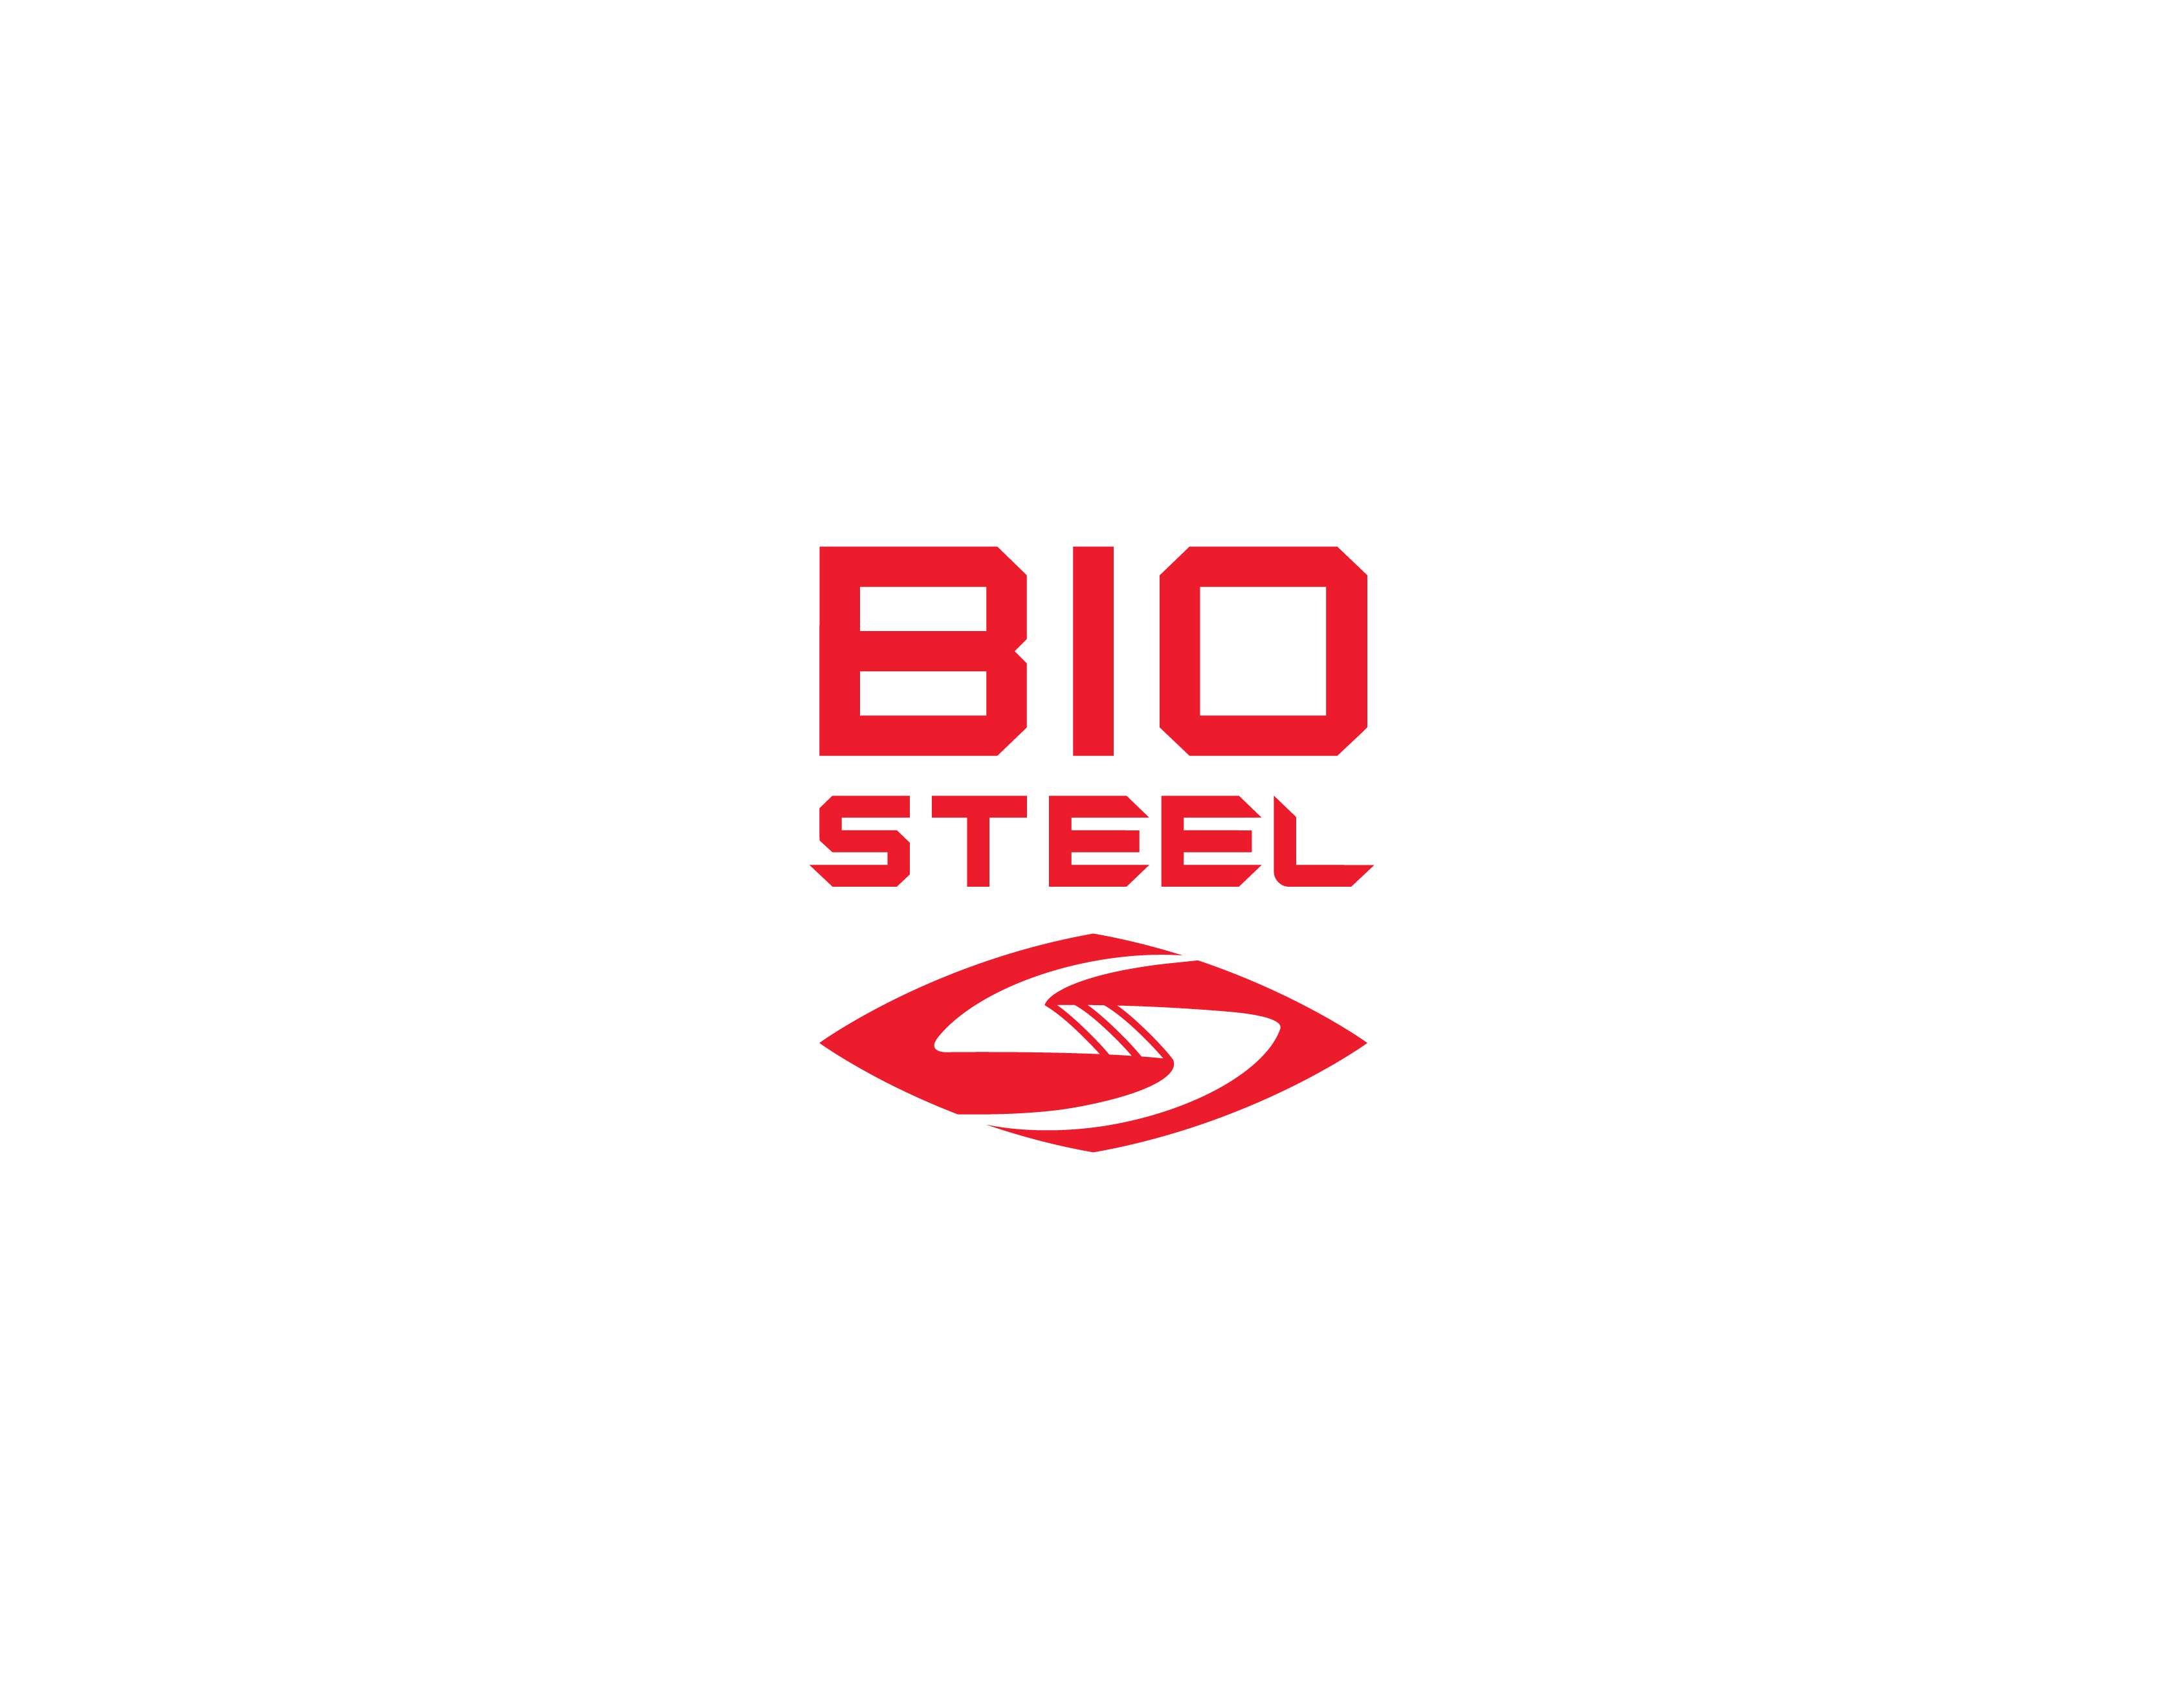 BioSteel-SquareLogo-Red-01.png